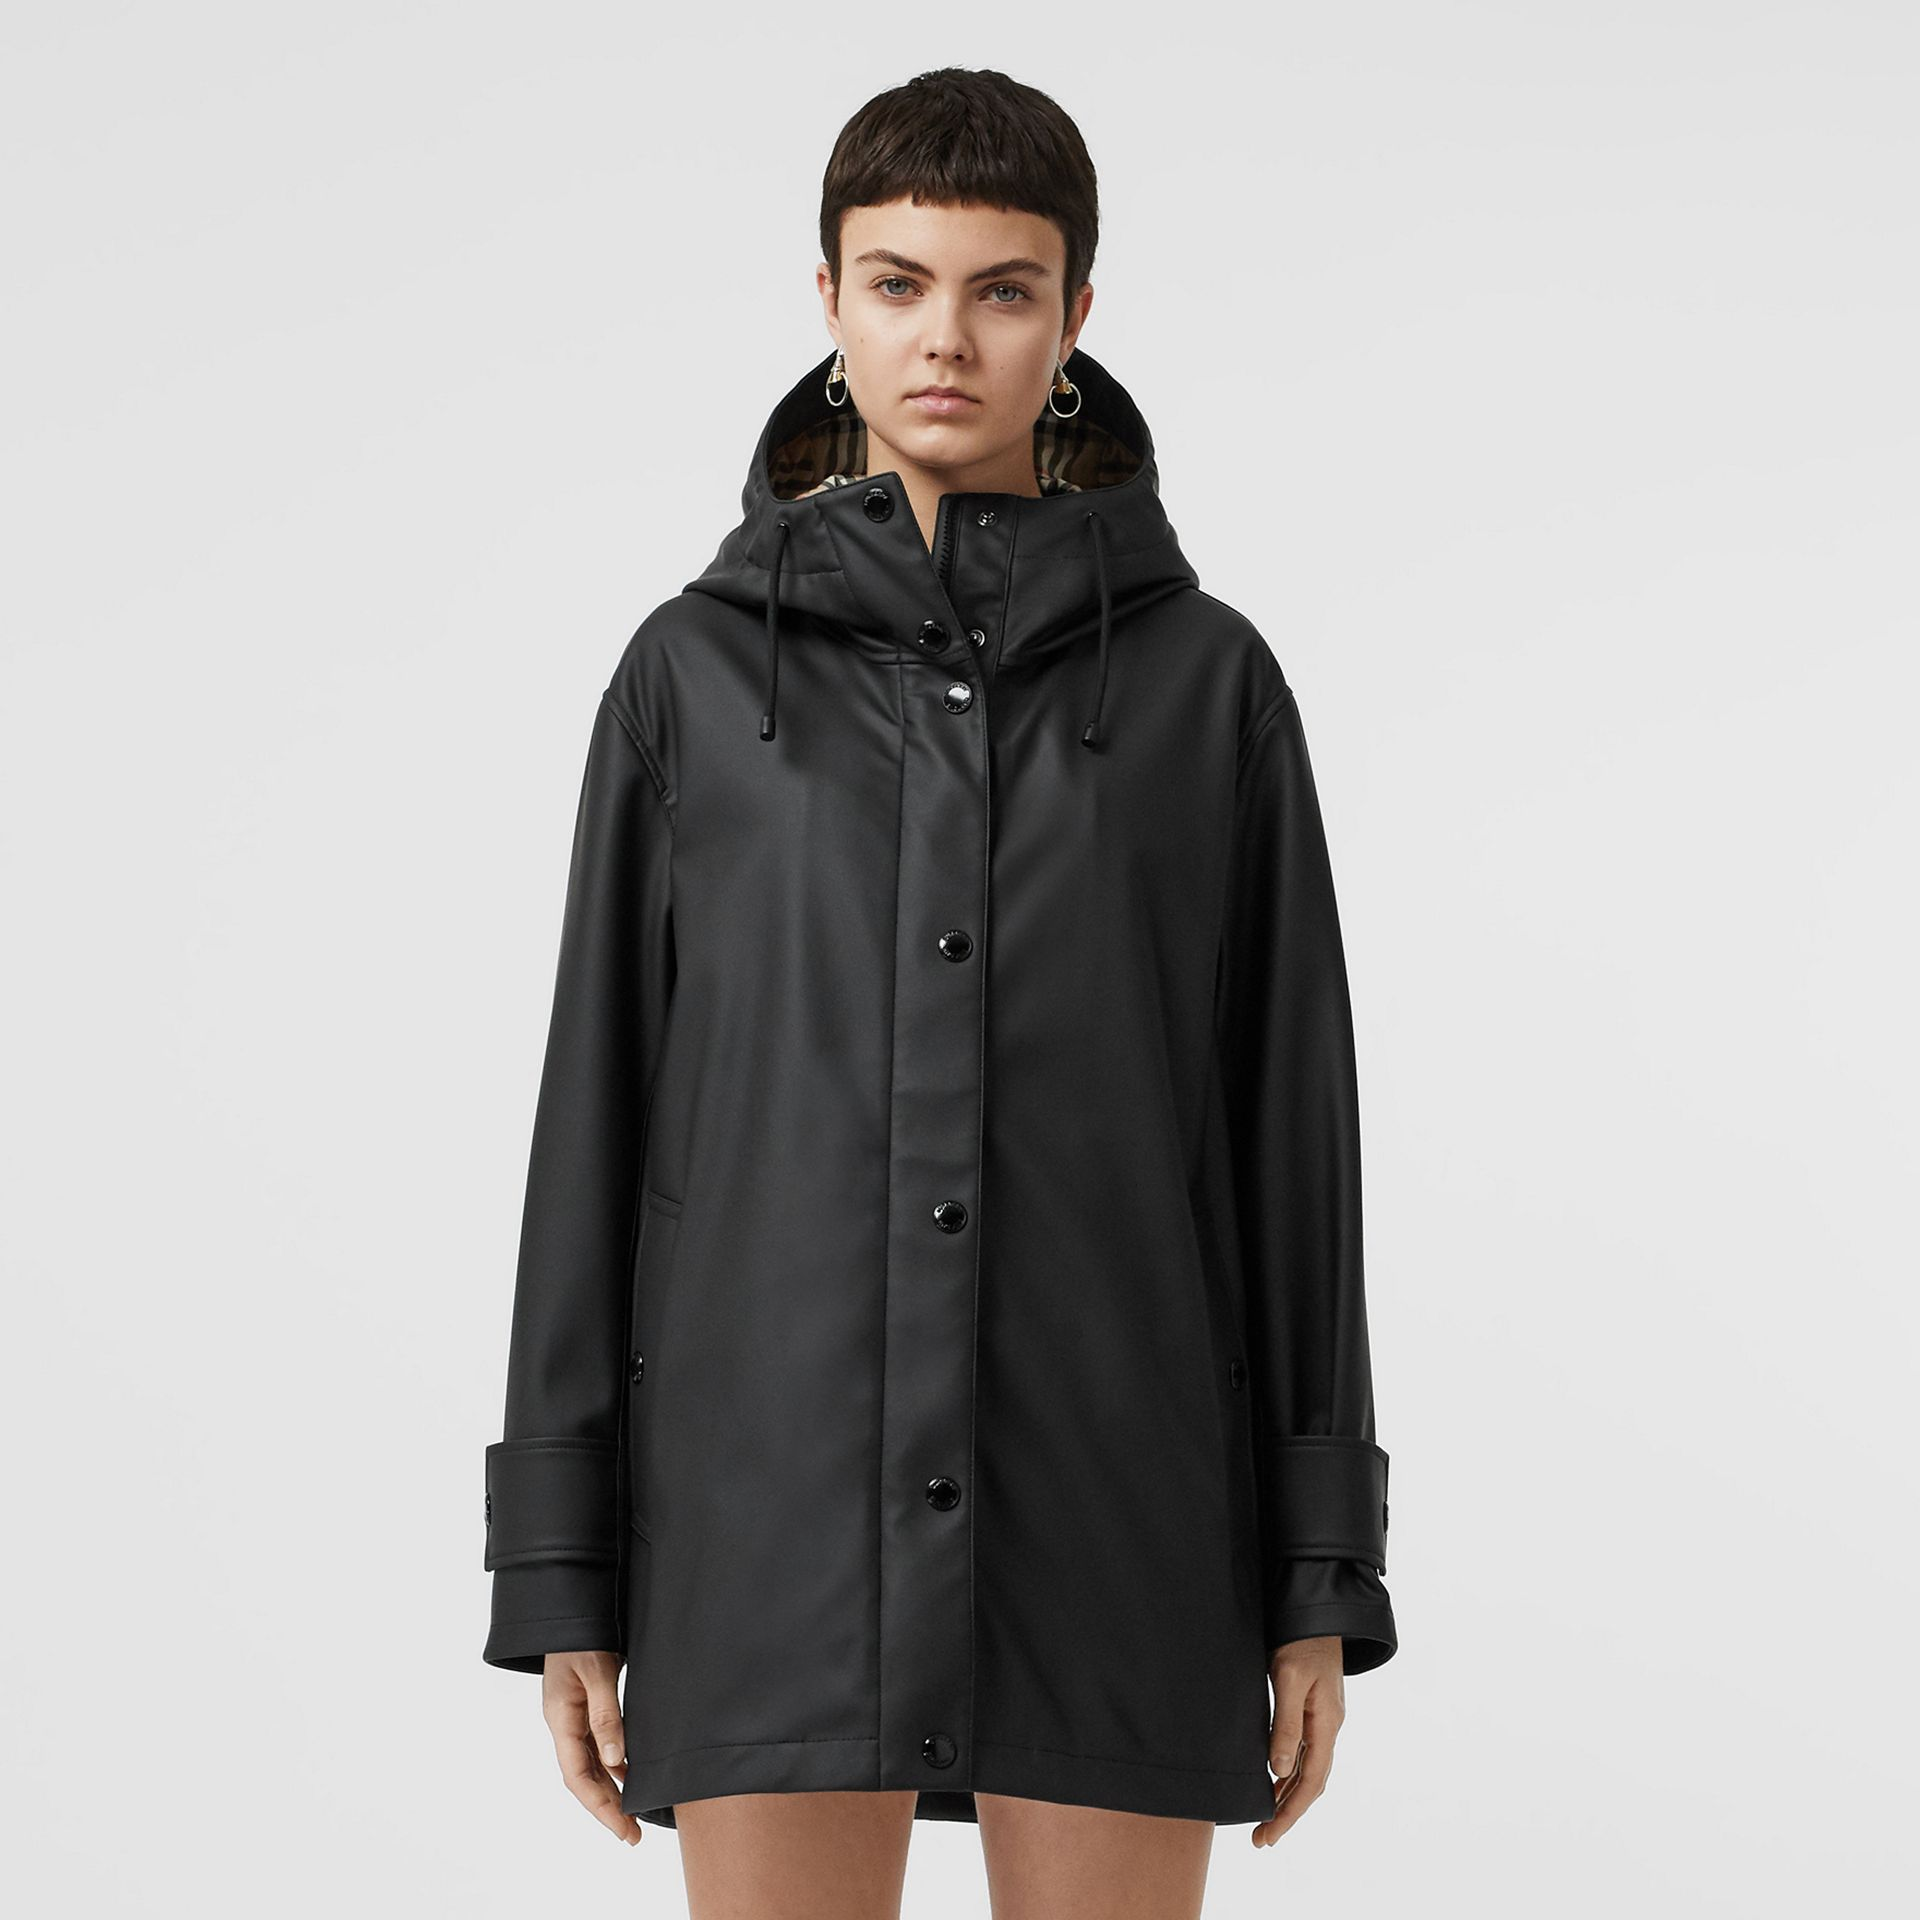 Logo Print Showerproof Hooded Coat in Black/white - Women | Burberry - gallery image 5